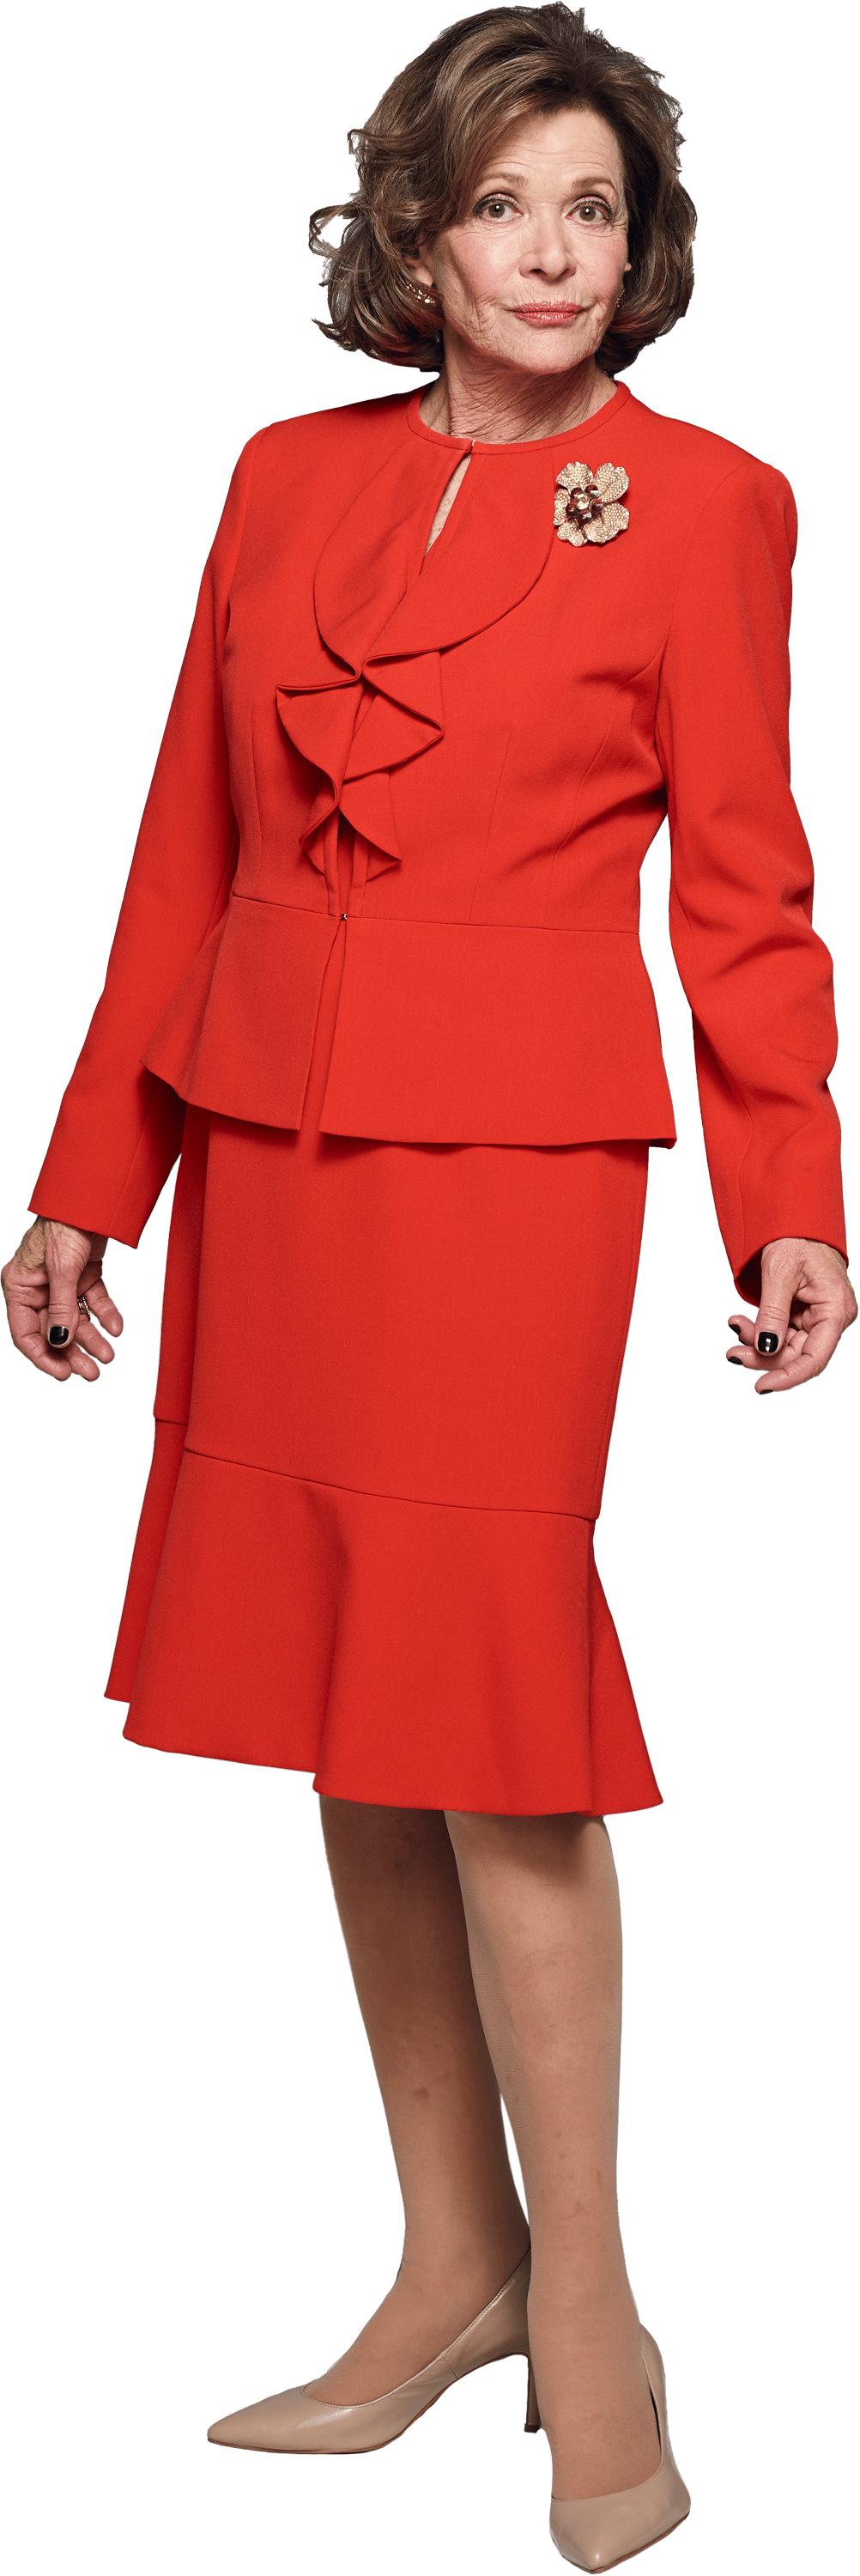 2018 Vote Bluth - Lucille 02.png